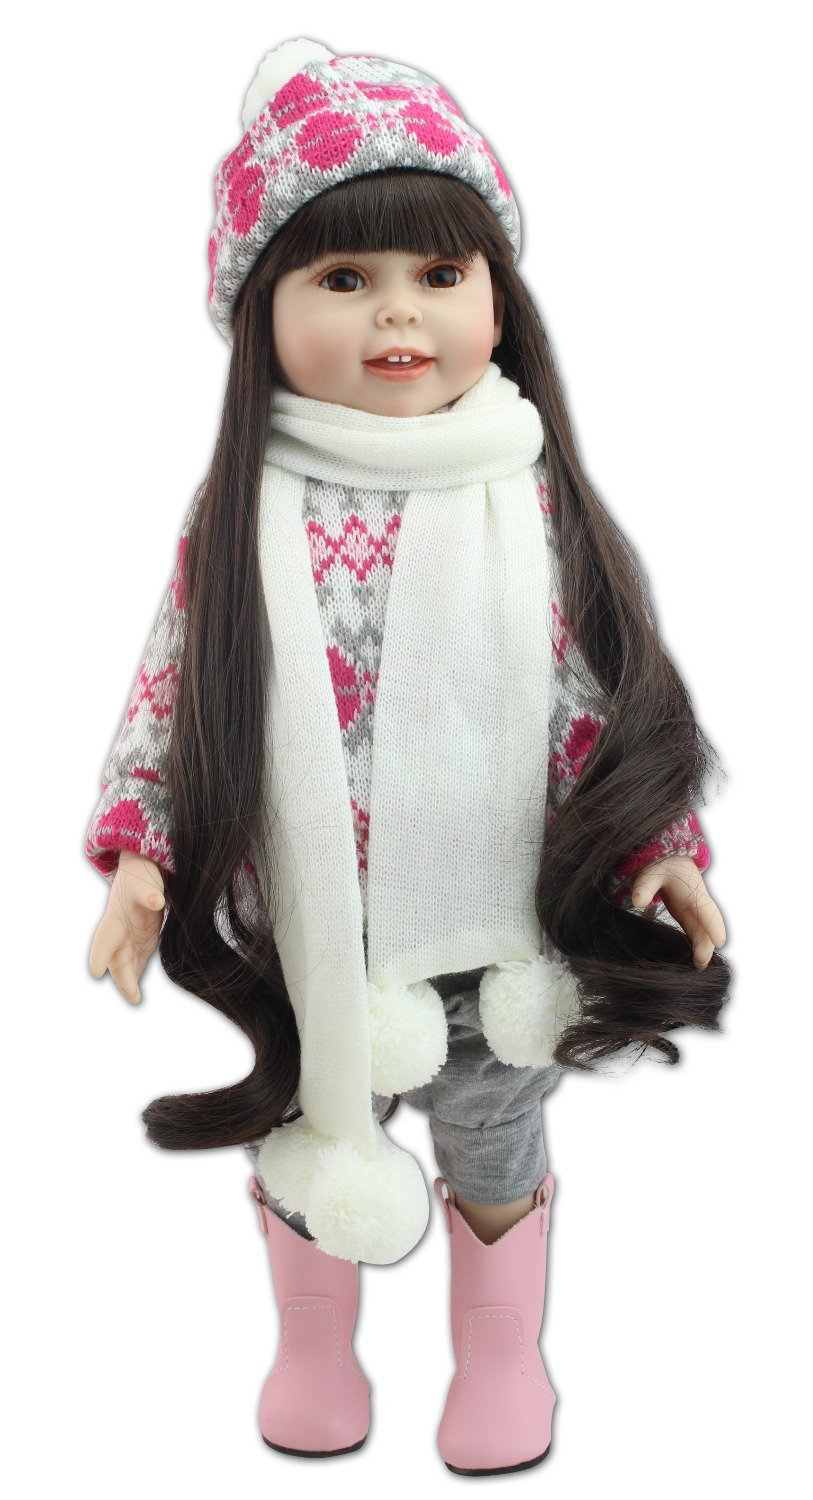 Toys For Winter : New design most popular winter doll inches fashion play